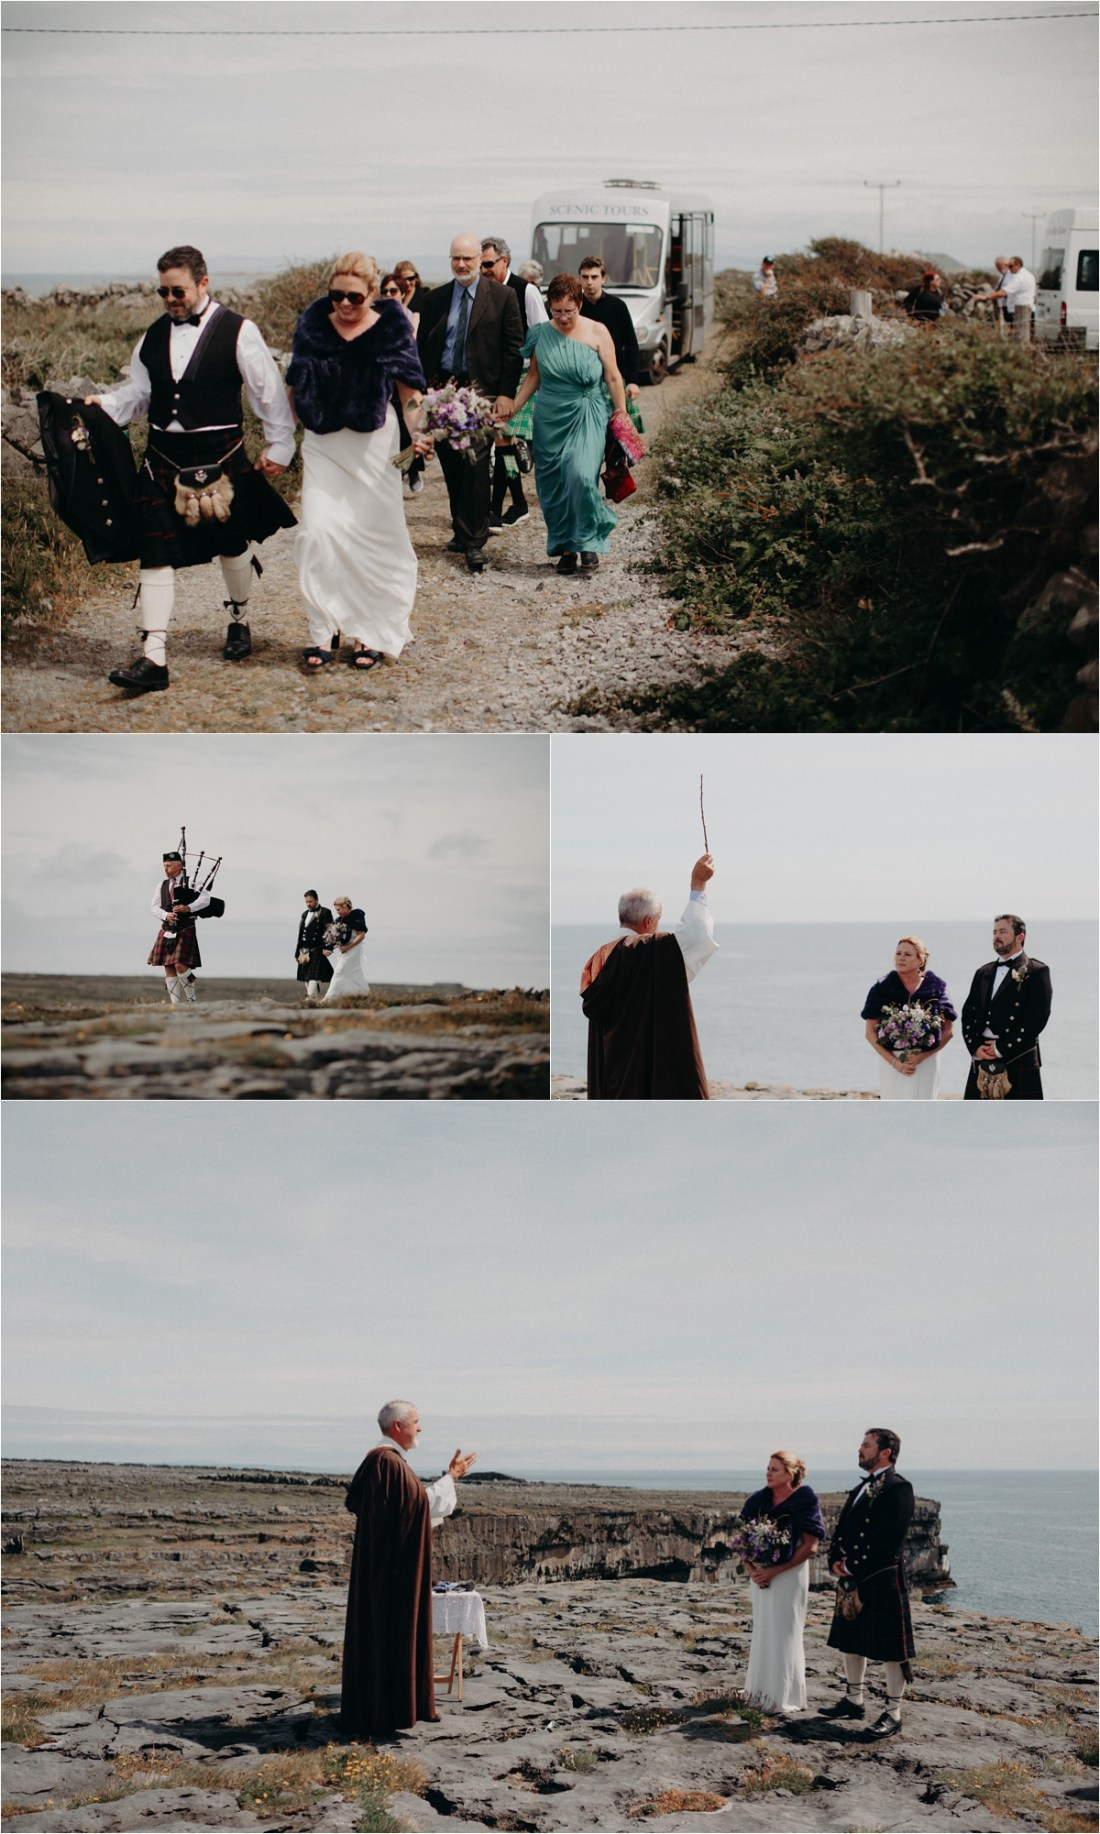 A wedding ceremony in the Aran Islands. Photos by Sean & Kate